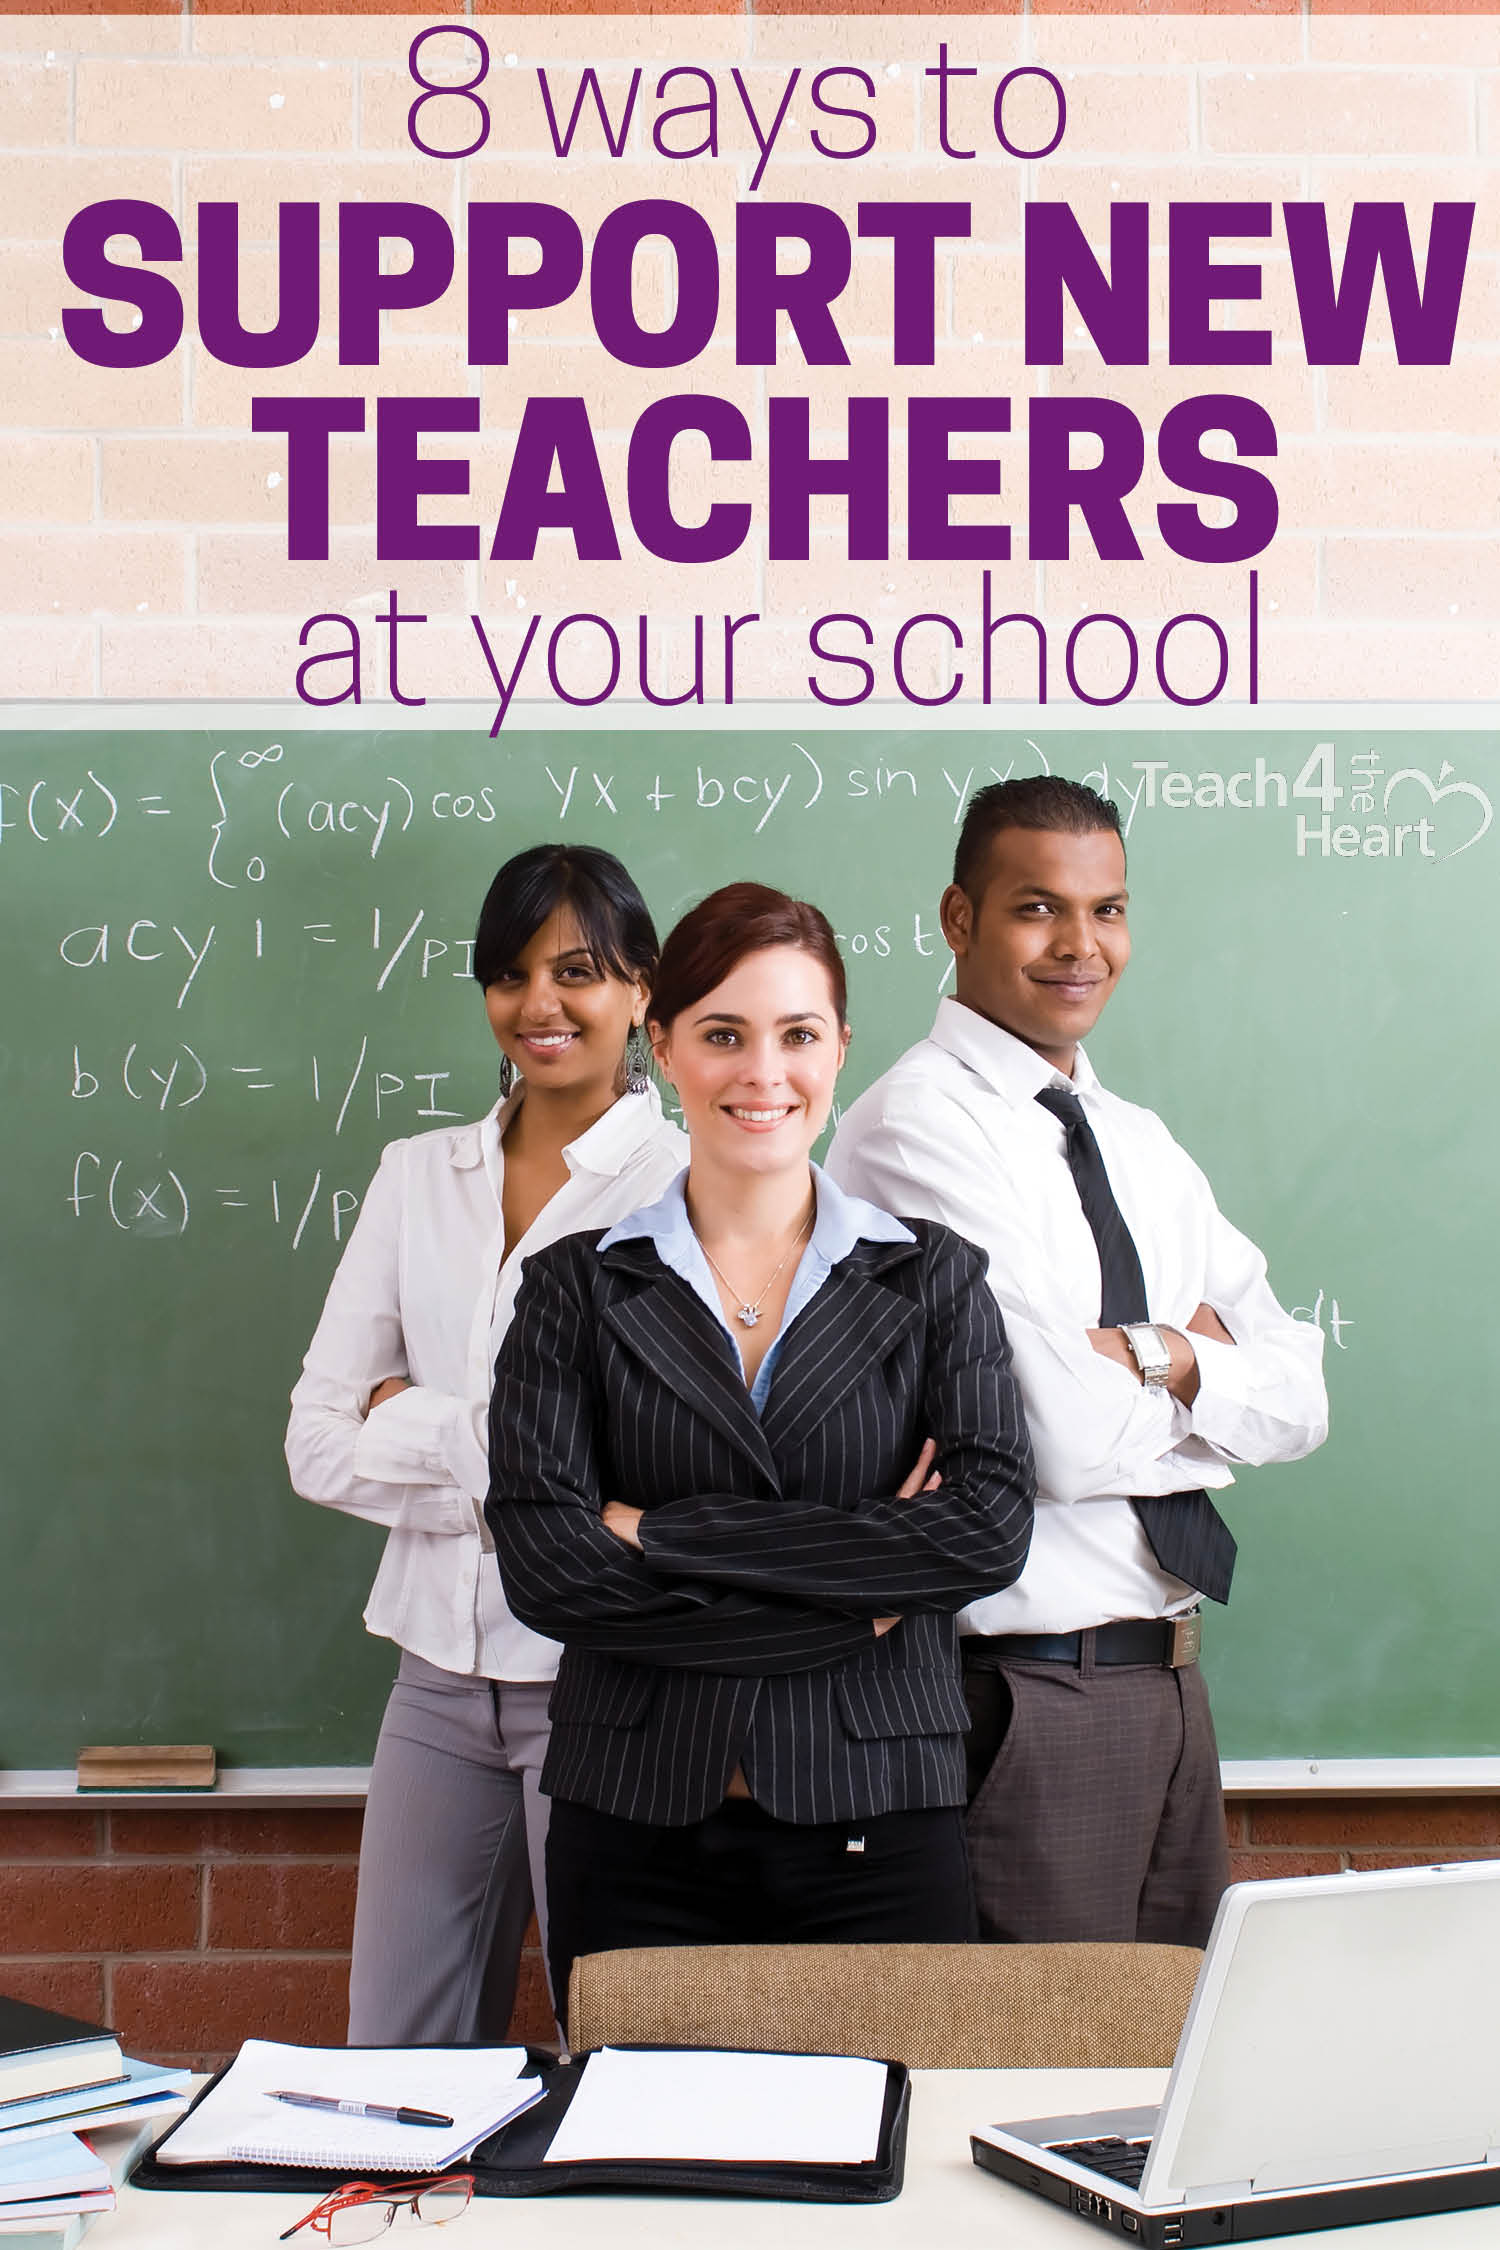 how to support new teachers at your school